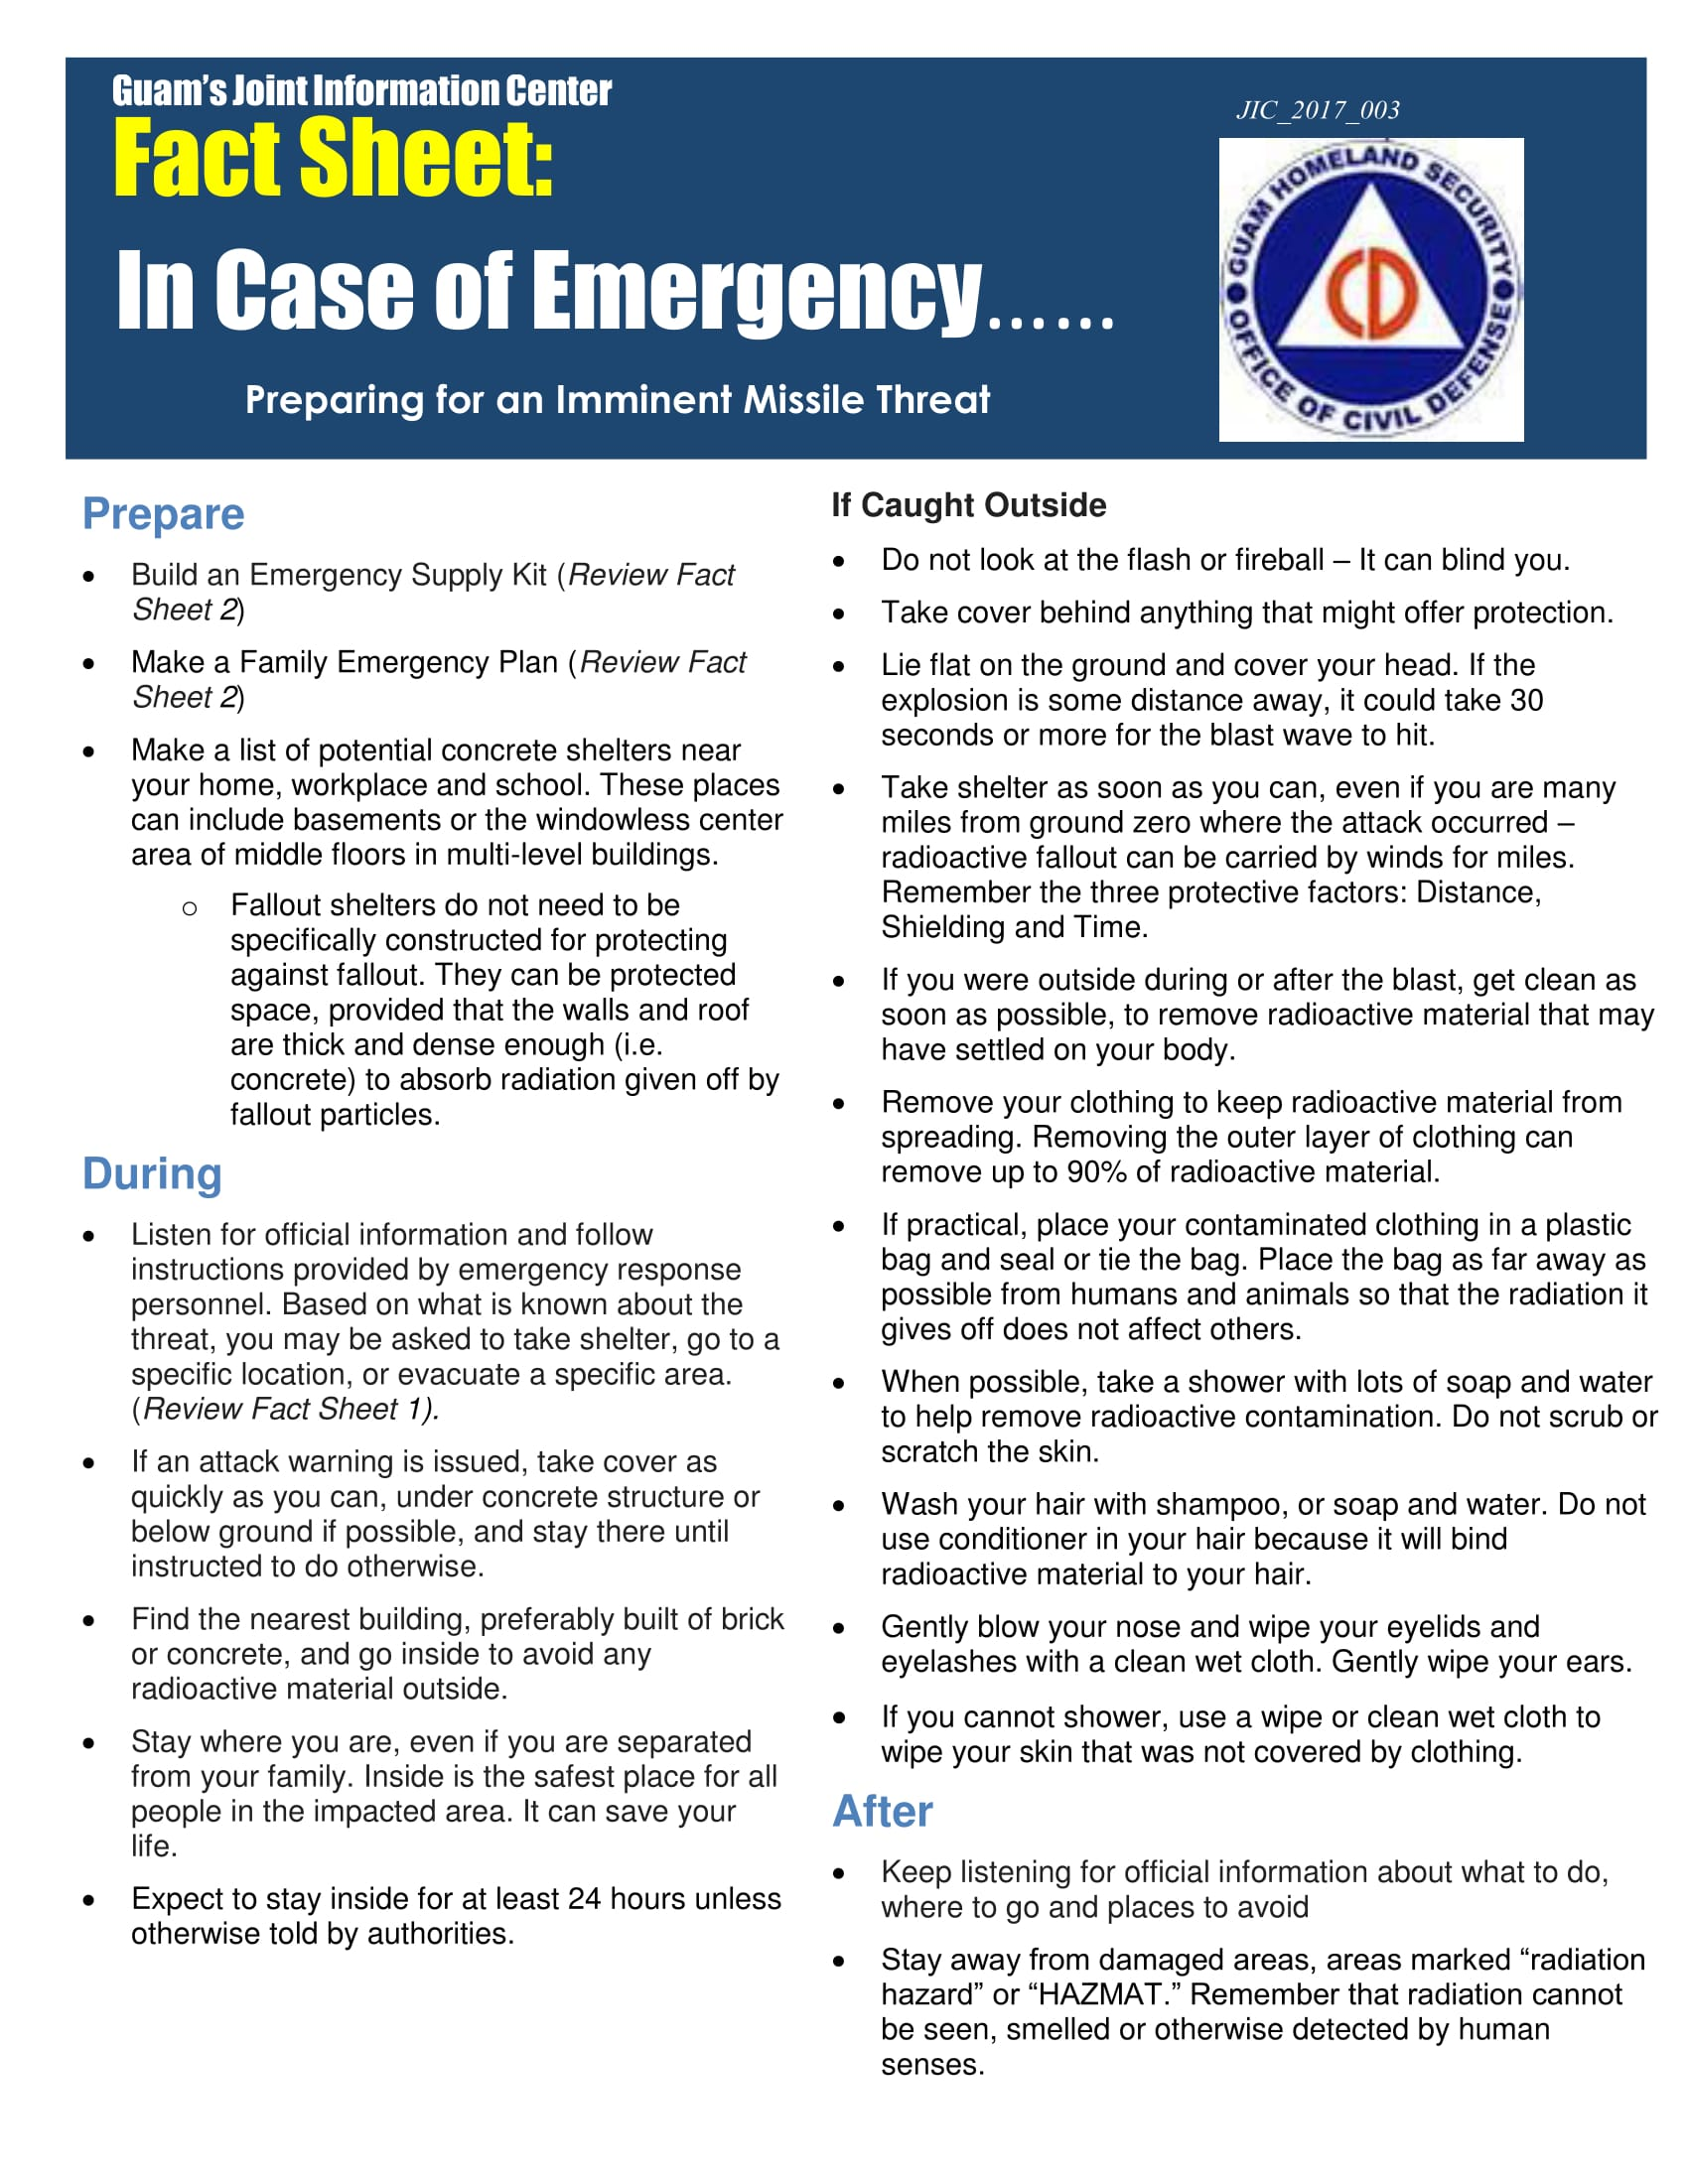 jic_factsheet_2017_003-in-case-of-emergency-paring-for-imminent-missile-threat-1